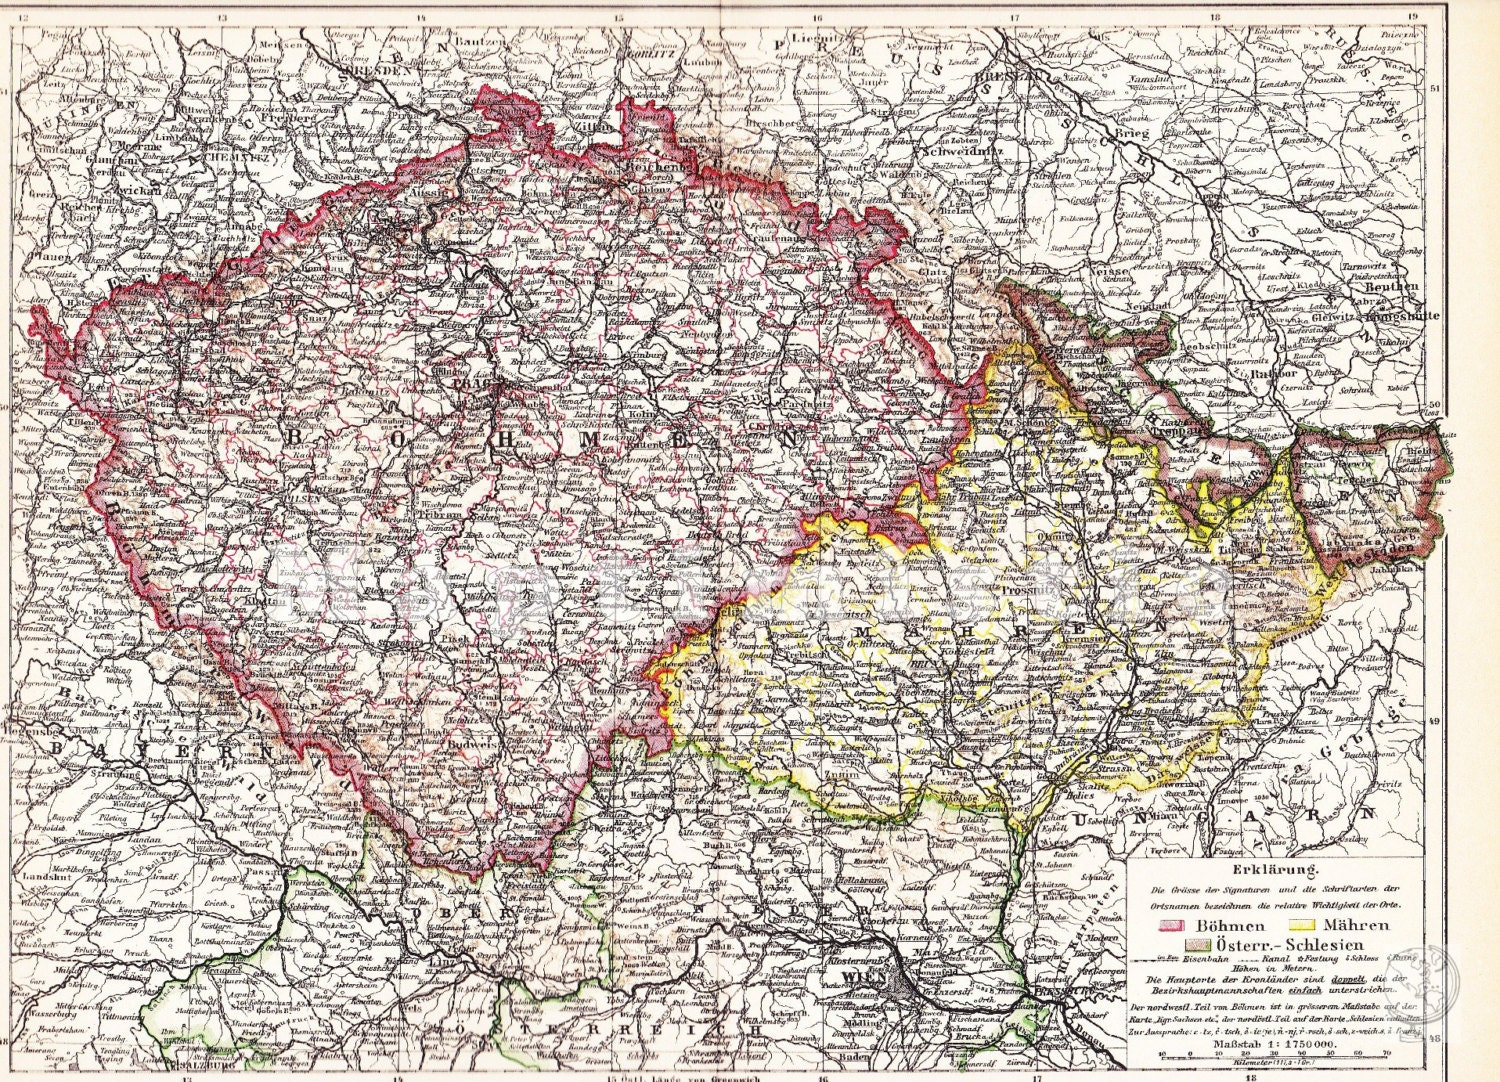 1898 Bohemia Moravia and Austrian Silesia in Central ...Silesia Map Europe